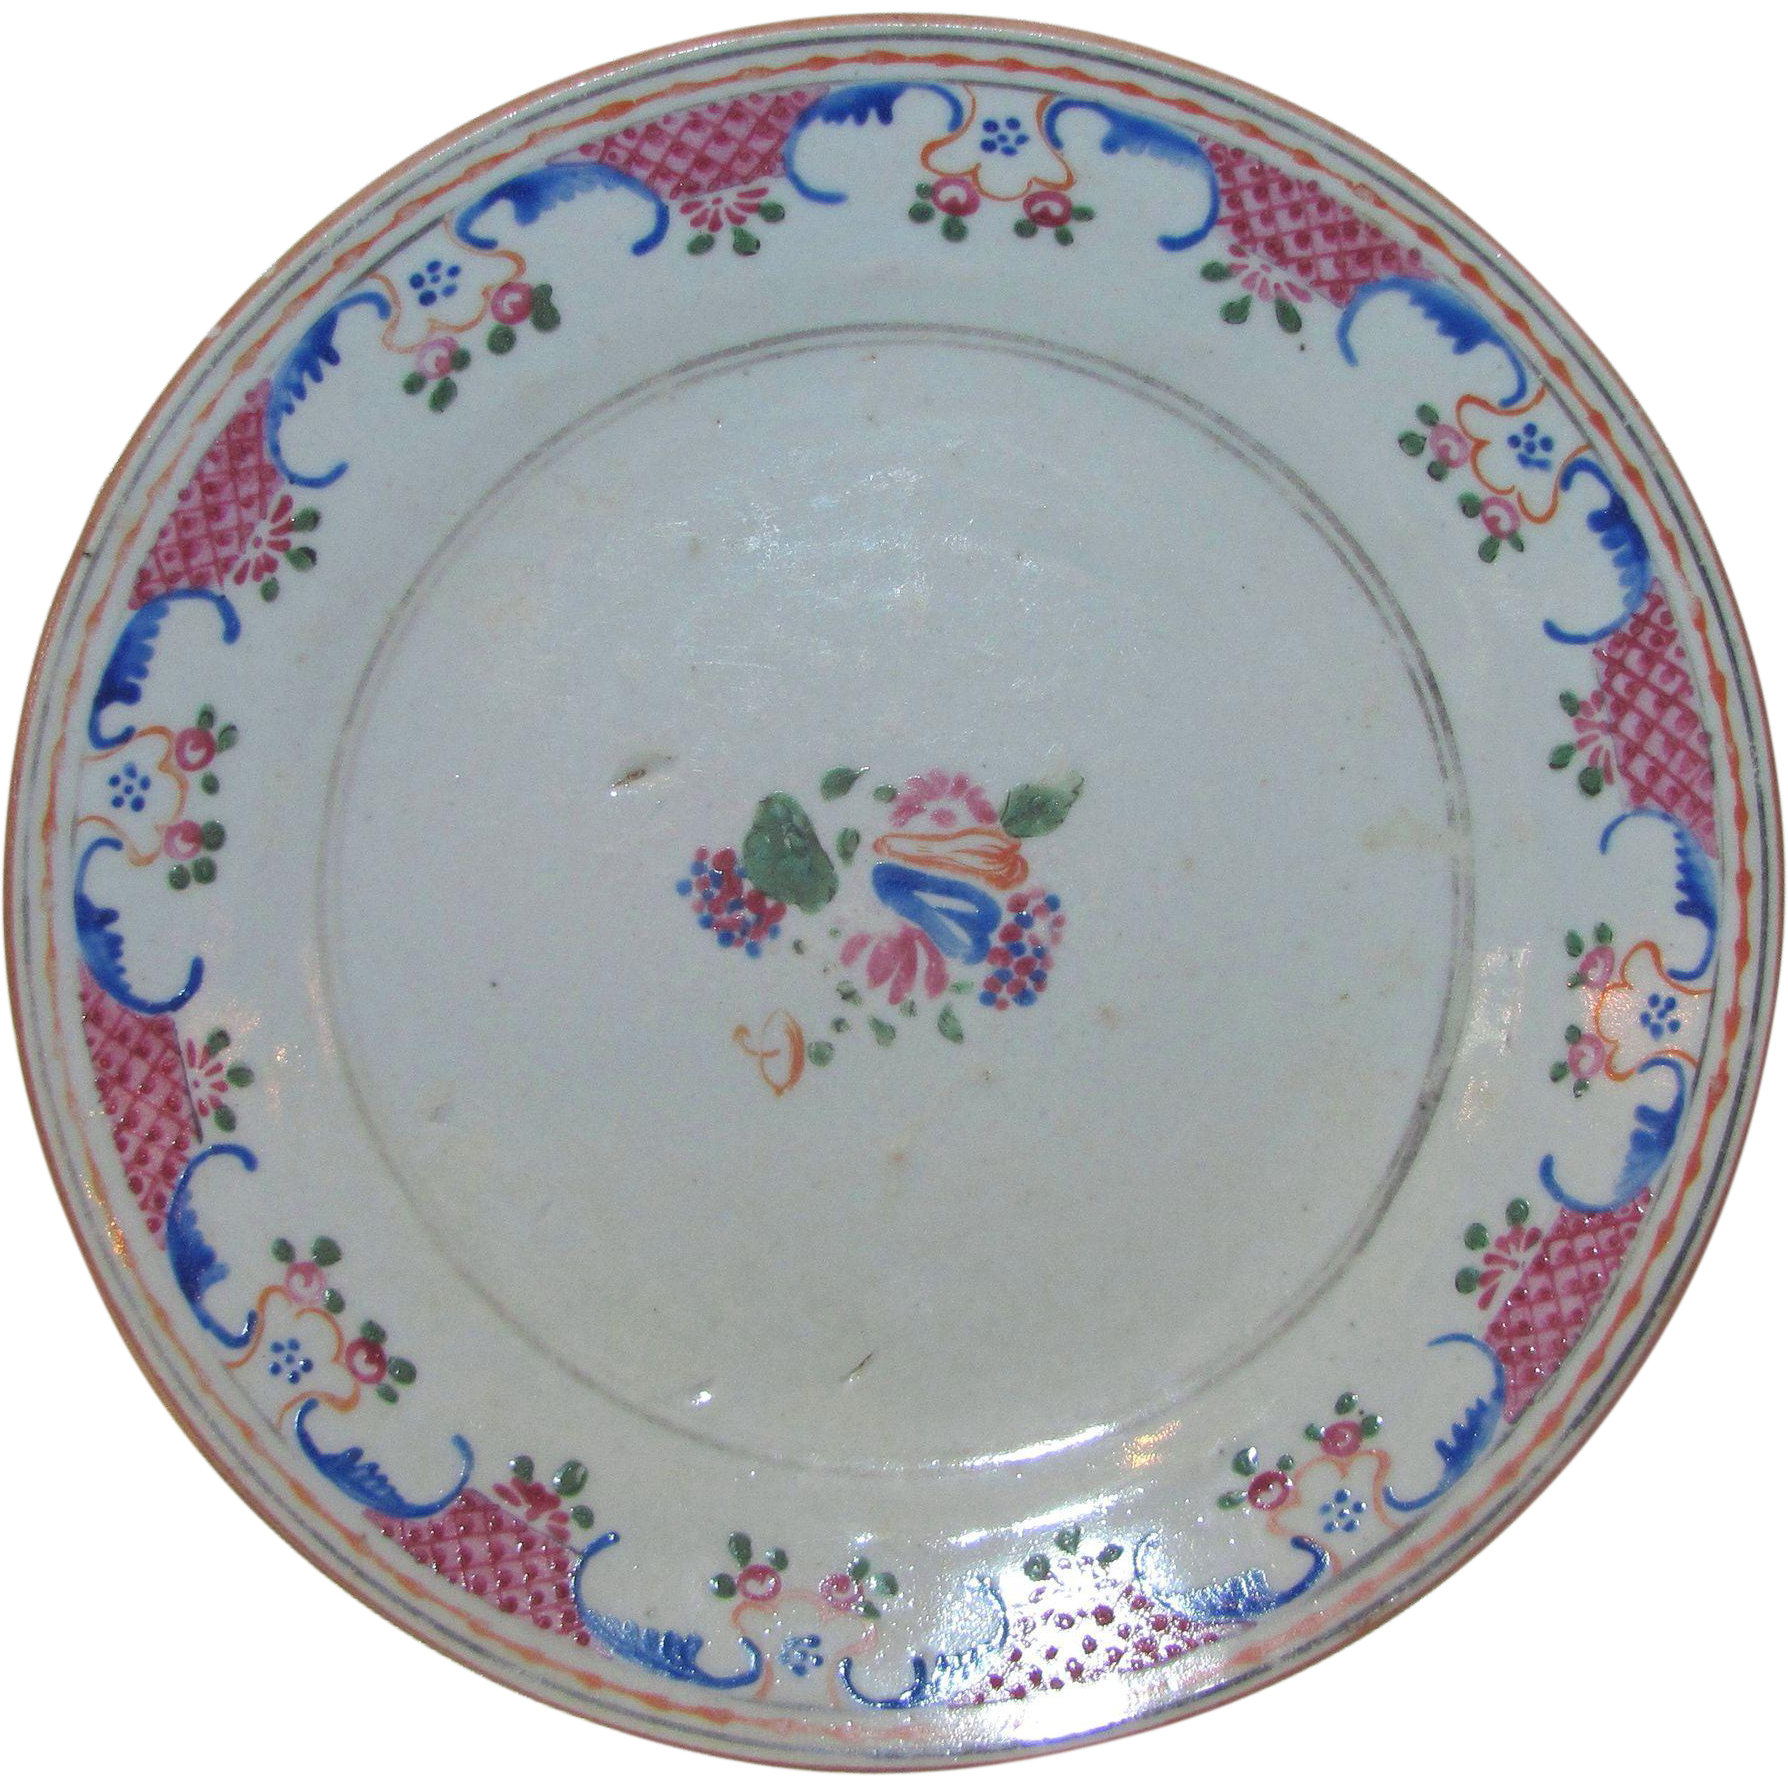 Antique Chinese Export Ceramic Plate Circa 1800